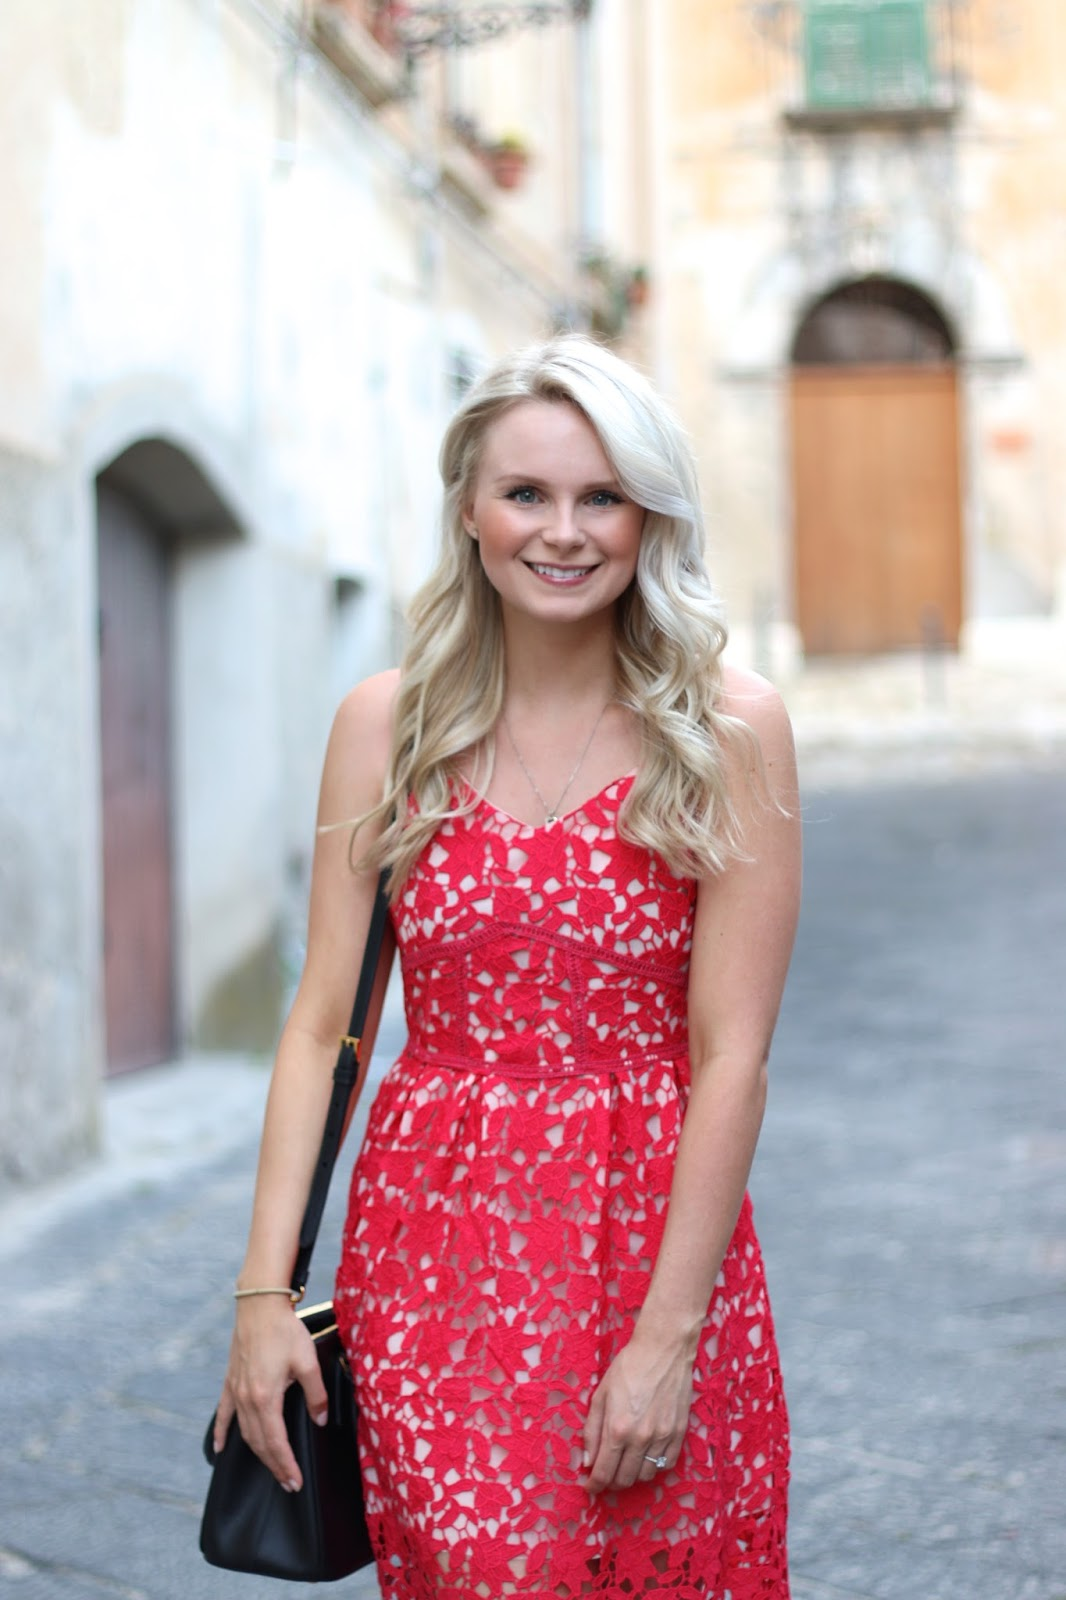 a women walks through tiny streets of old italy with loose blonde curls and red lace dress